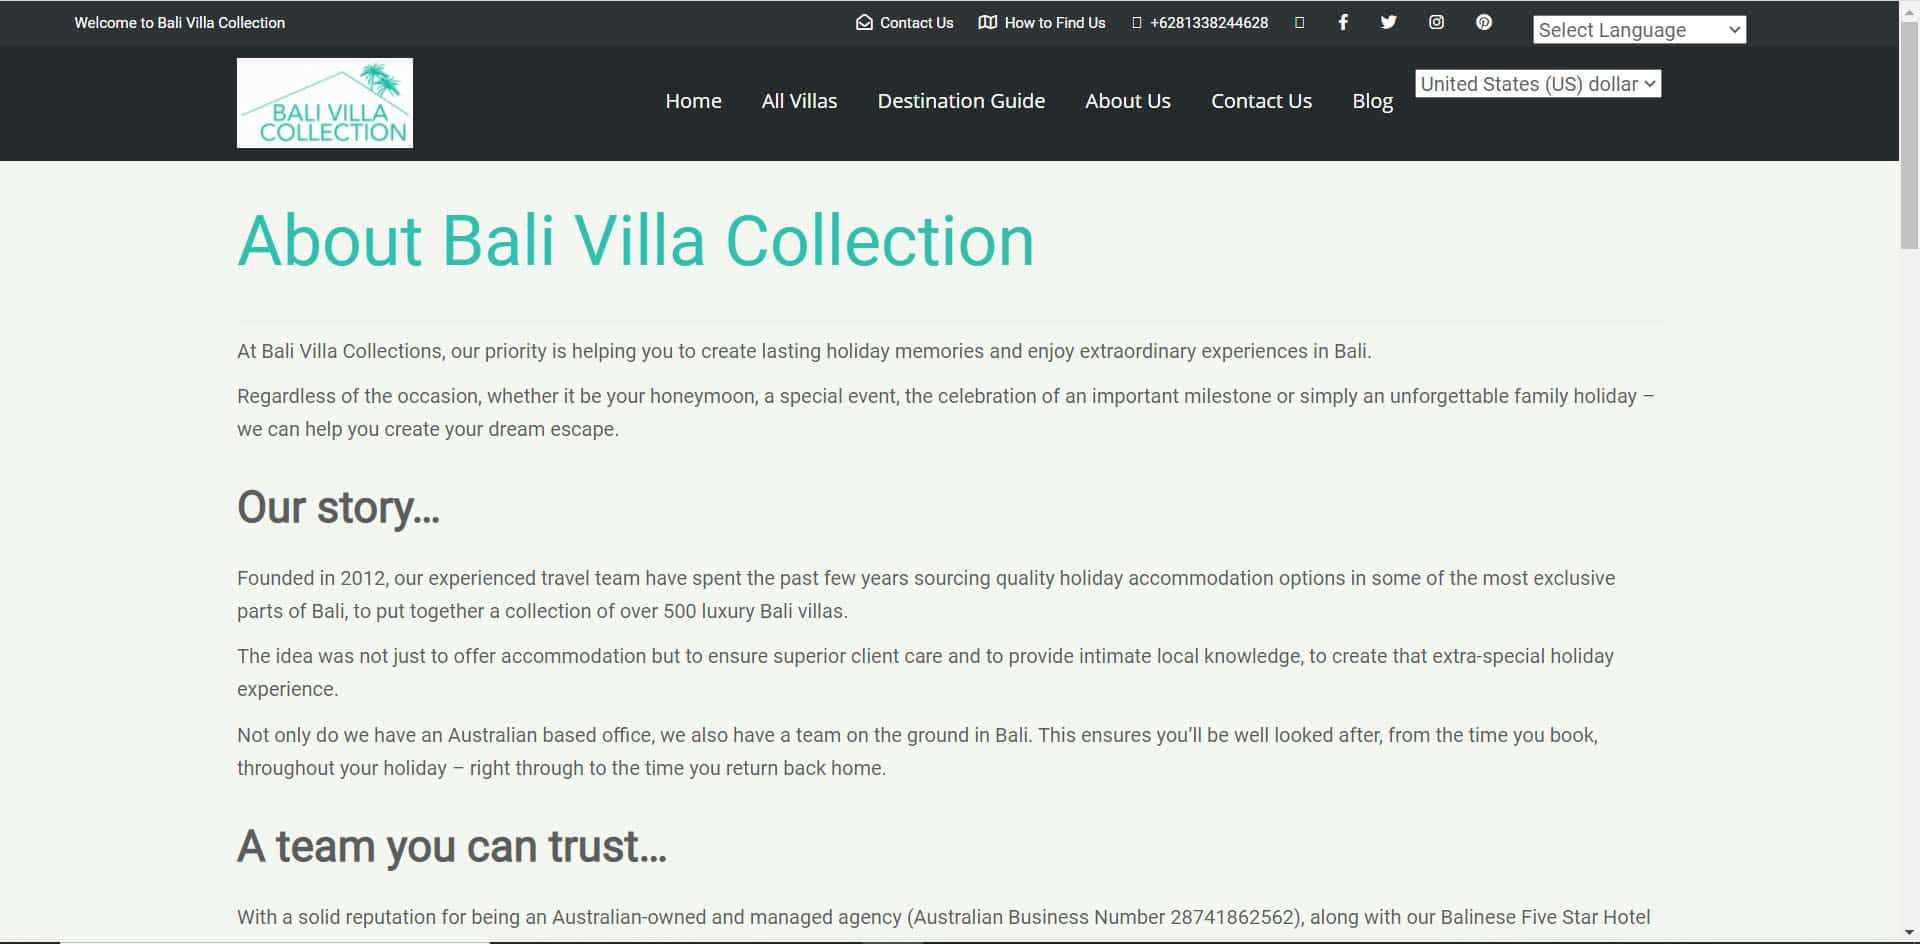 Bali Villa Collection - About Page